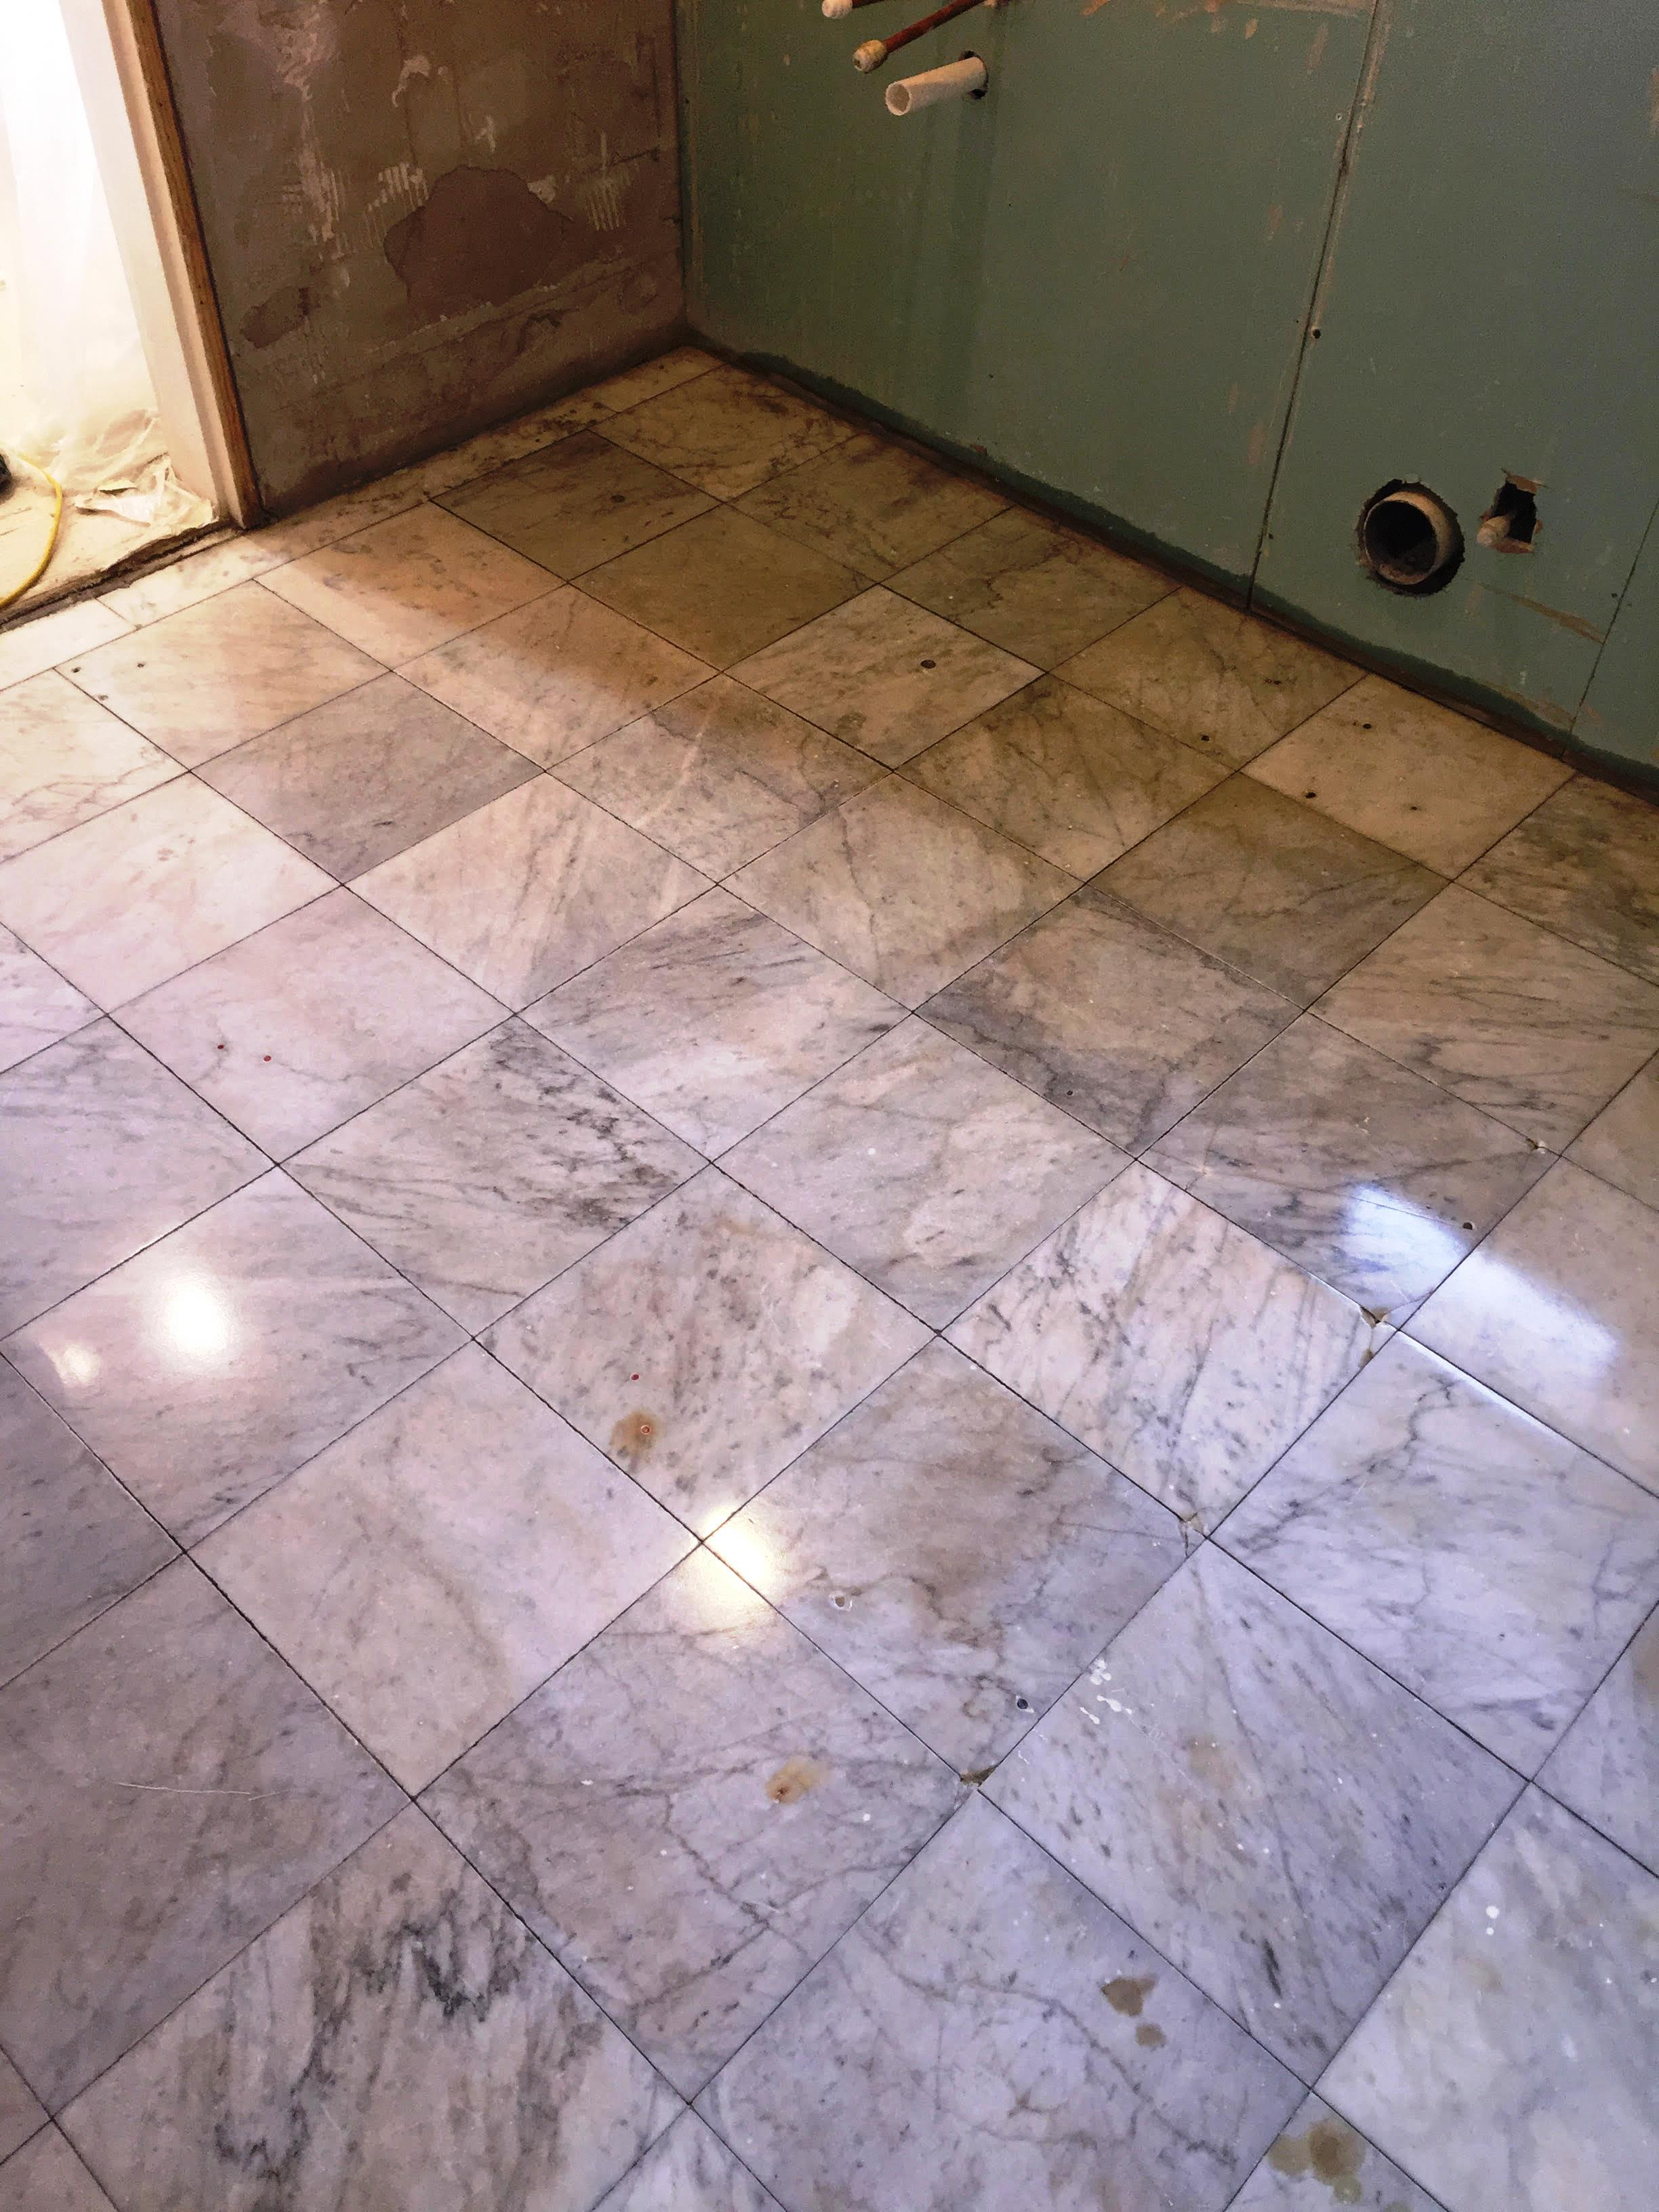 Marble Tiled Bathroom Floor After Restoration Walkerburn